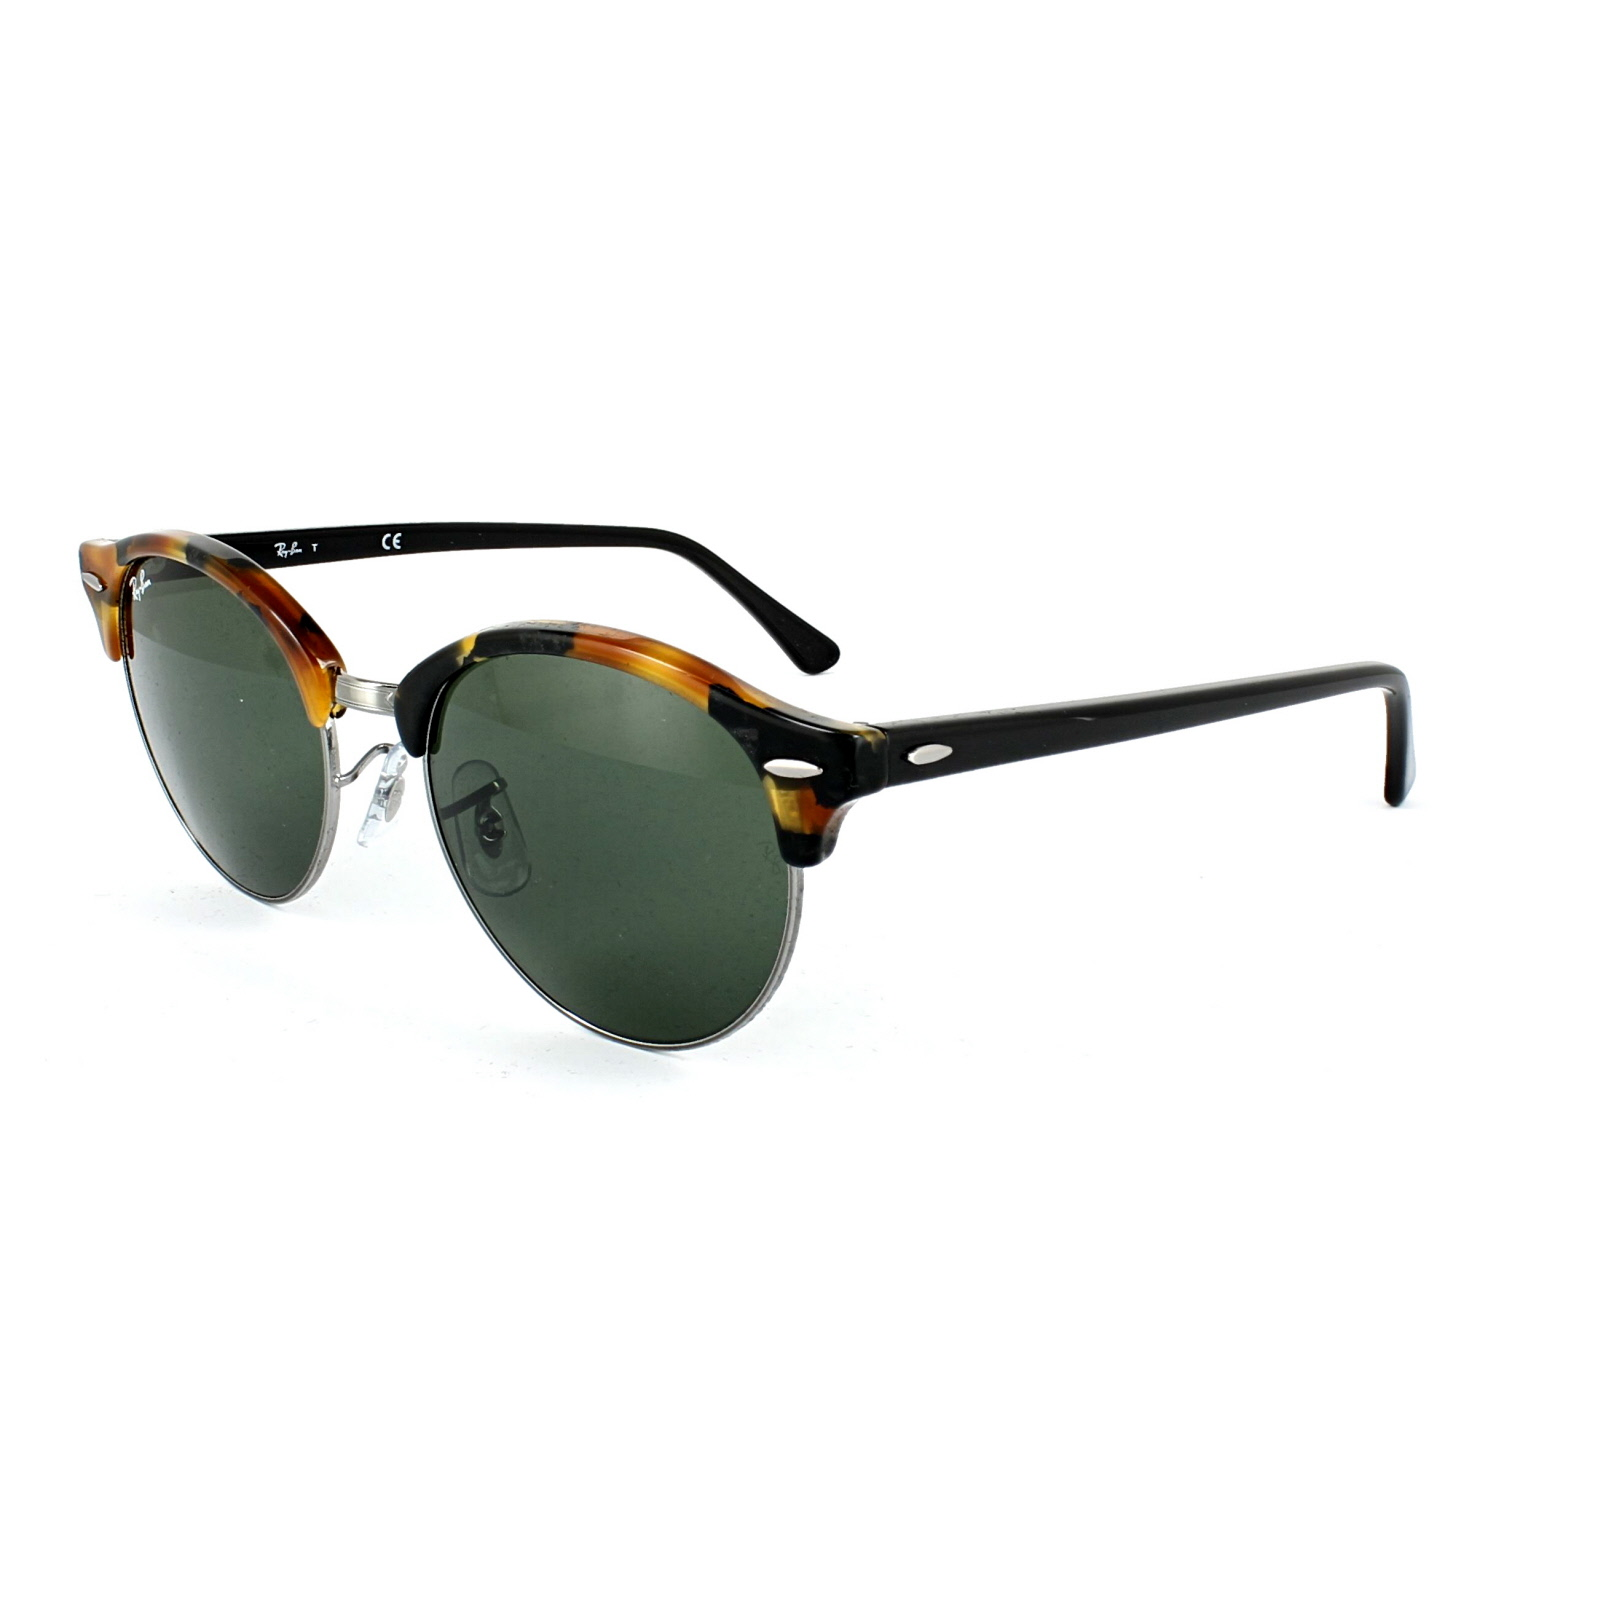 ray ban sunglasses clubround 4246 1157 spotted black havana gold green ebay. Black Bedroom Furniture Sets. Home Design Ideas